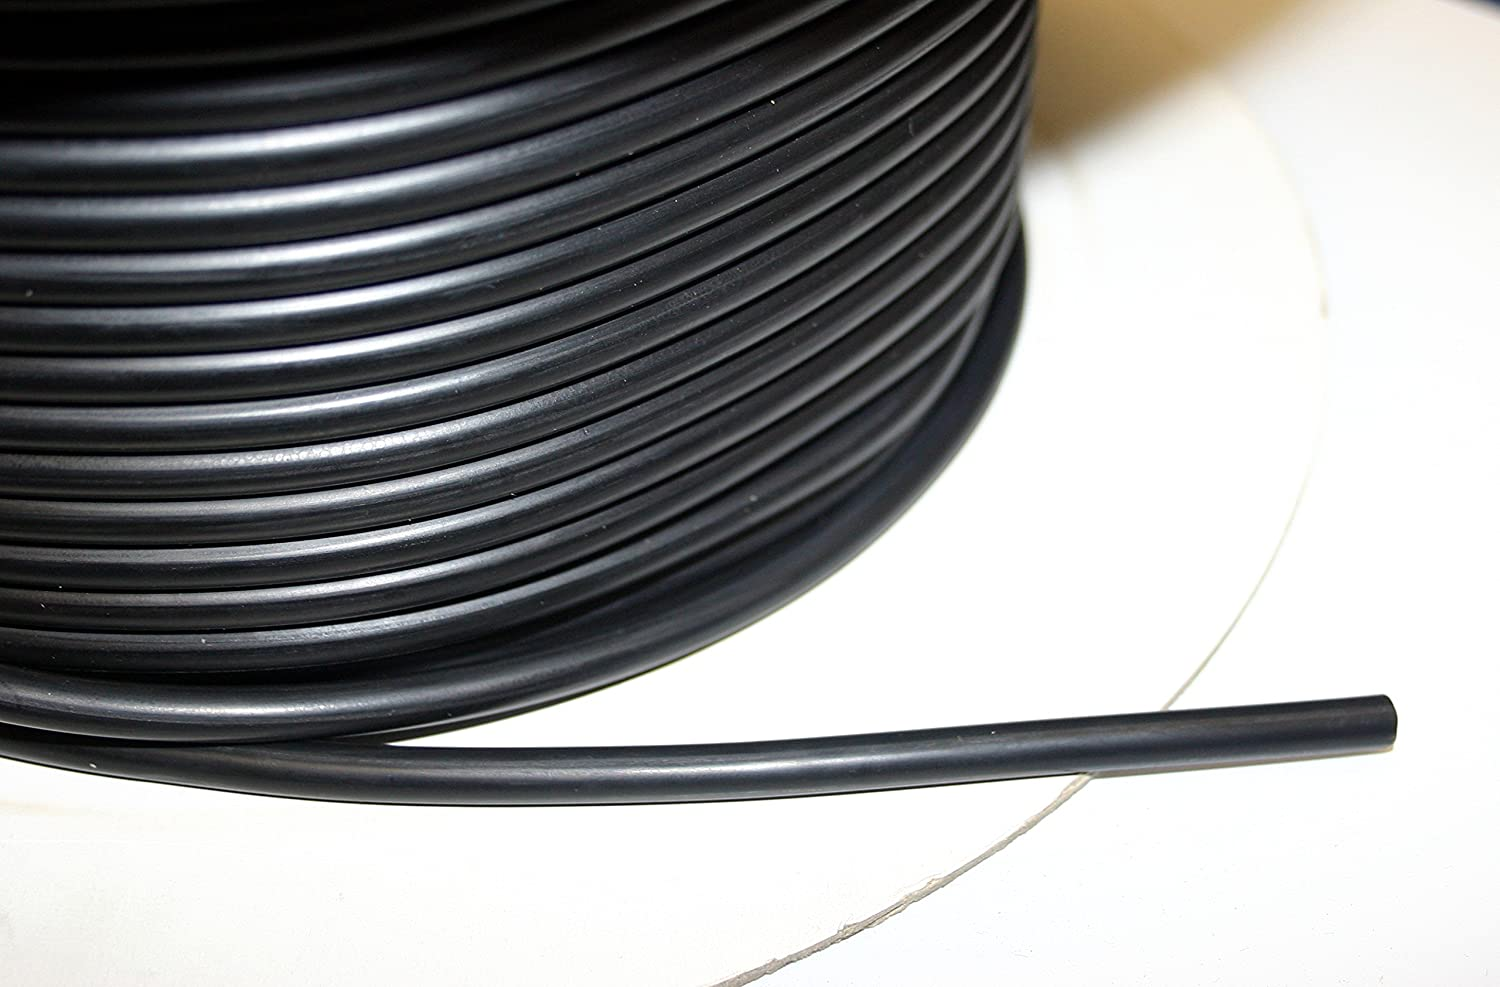 Nitrile rubber O-ring cord - 5mm diameter - sold per metre - oil, water, fuel seals Thorne